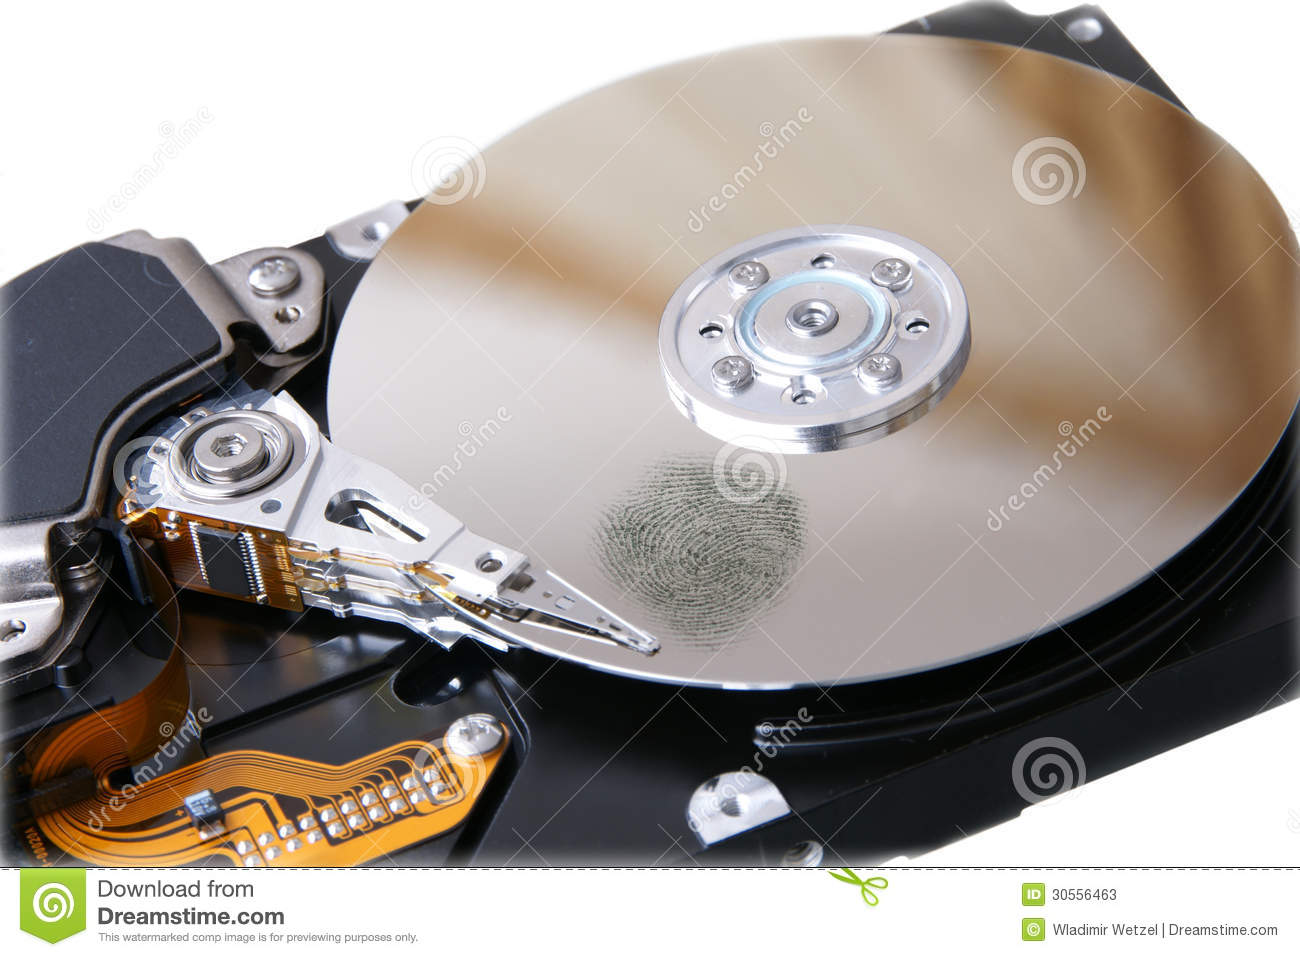 how to clean hard disk drive